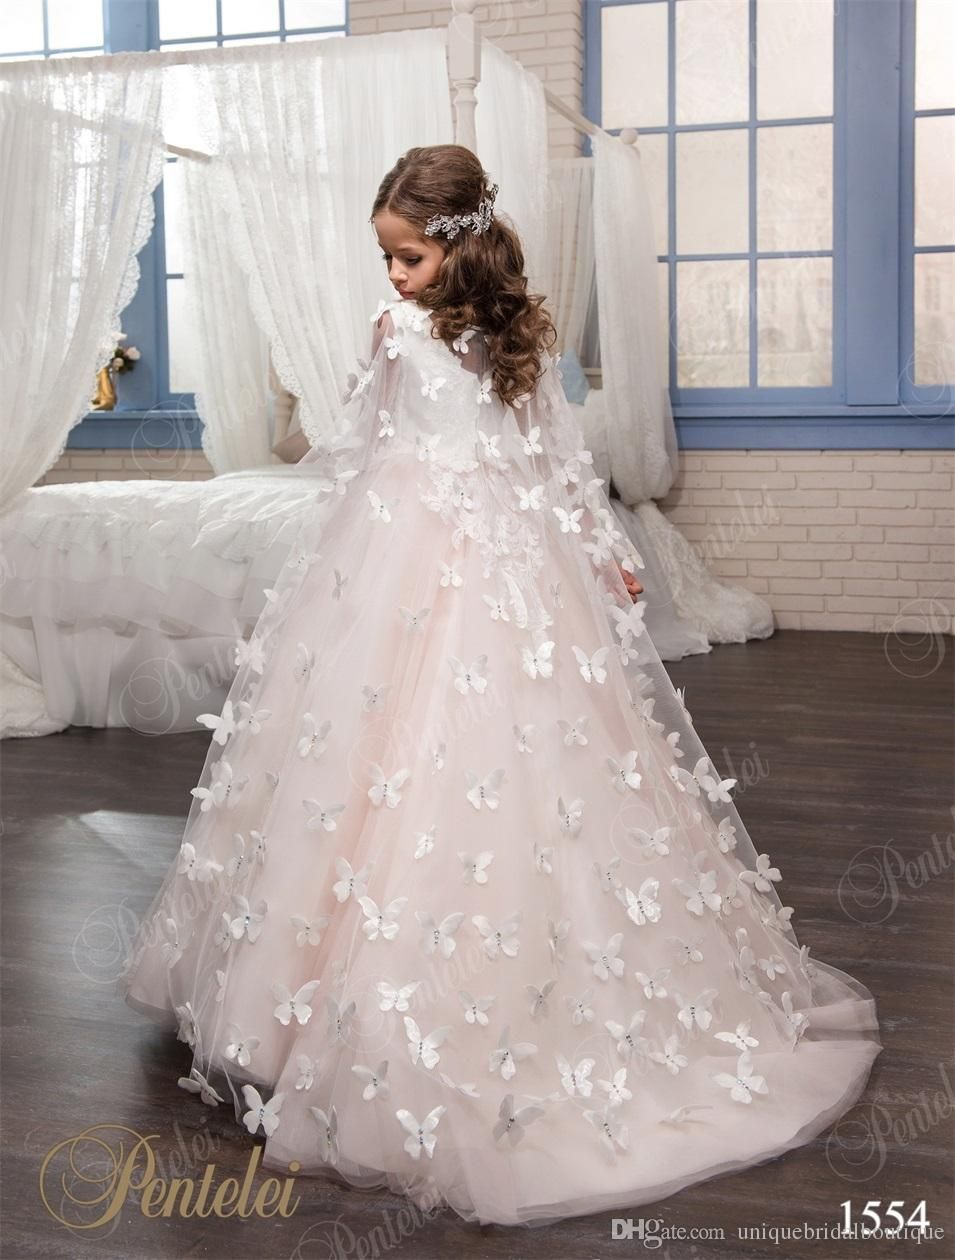 Butterfly flower girls dresses 2017 pentelei with long sleeves and kids wedding dresses with butterfly wraps 2017 pentelei hand made flowers tulle pre teens girls party ombrellifo Images